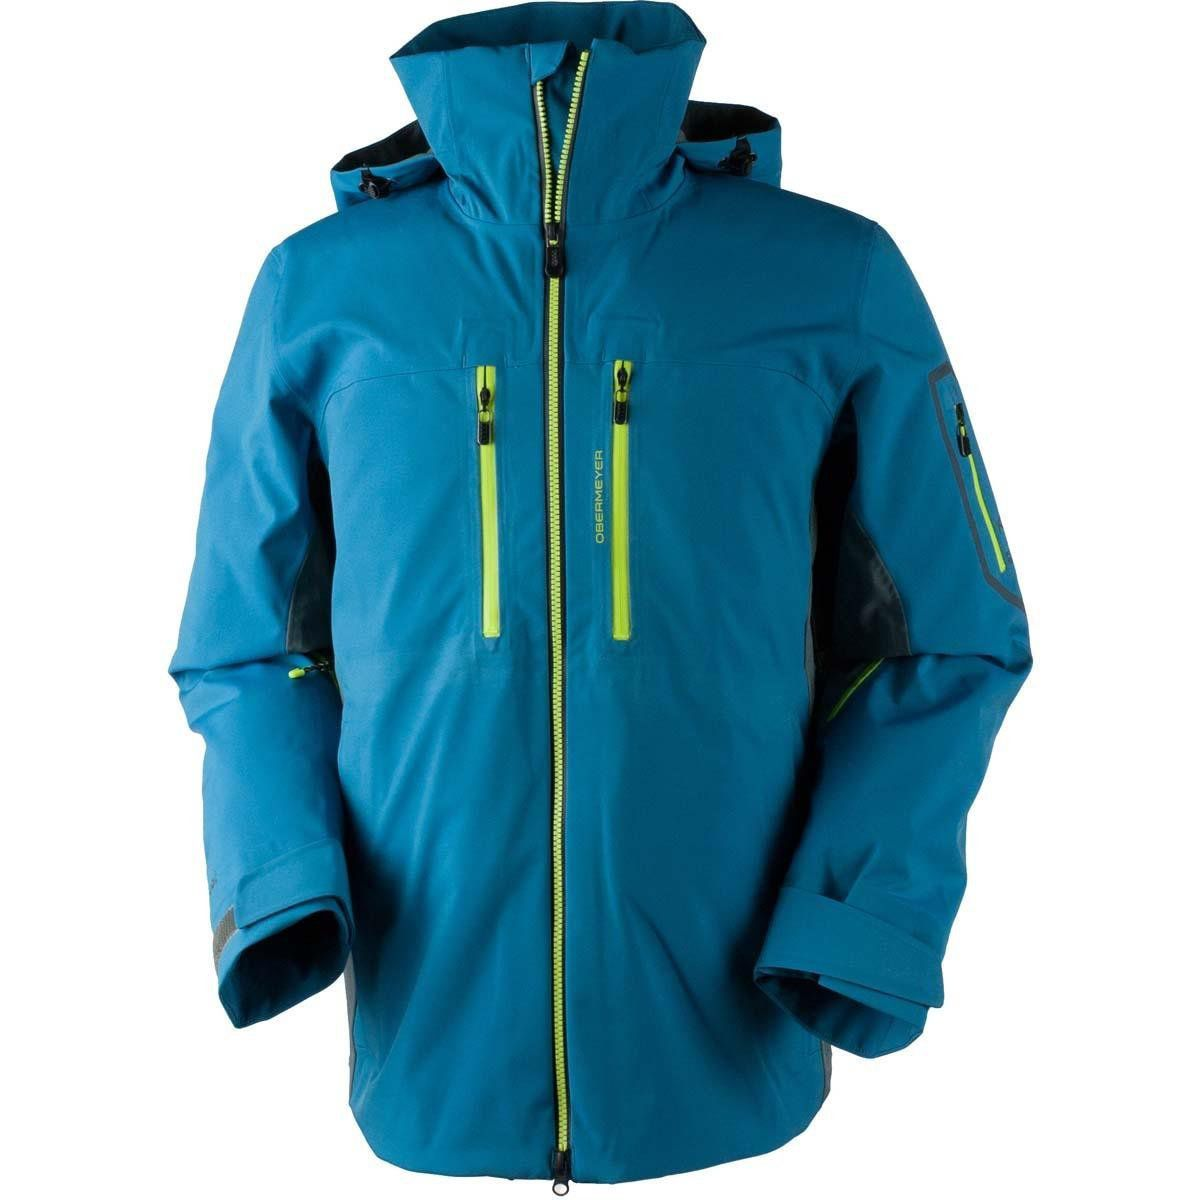 ddb887f6ab The 9 Best Ski Clothing Brands of 2019